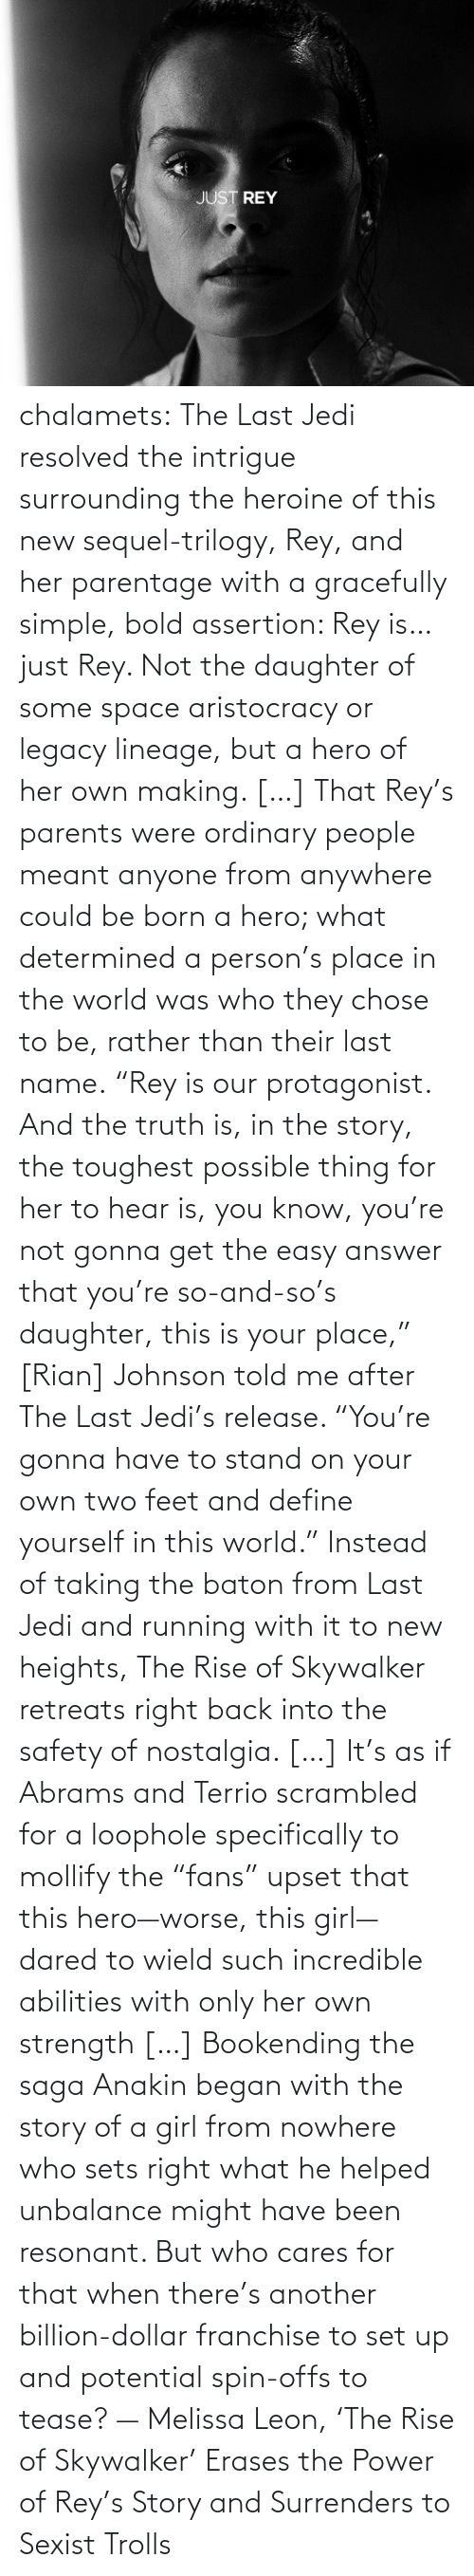 "daughter: chalamets:  The Last Jedi resolved the intrigue surrounding the heroine of this new sequel-trilogy, Rey, and her parentage with a gracefully simple, bold assertion: Rey is… just Rey. Not the daughter of some space aristocracy or legacy lineage, but a hero of her own making. […] That Rey's parents were ordinary people meant anyone from anywhere could be born a hero; what determined a person's place in the world was who they chose to be, rather than their last name. ""Rey is our protagonist. And the truth is, in the story, the toughest possible thing for her to hear is, you know, you're not gonna get the easy answer that you're so-and-so's daughter, this is your place,"" [Rian] Johnson told me after The Last Jedi's release. ""You're gonna have to stand on your own two feet and define yourself in this world."" Instead of taking the baton from Last Jedi and running with it to new heights, The Rise of Skywalker retreats right back into the safety of nostalgia. […] It's as if Abrams and Terrio scrambled for a loophole specifically to mollify the ""fans"" upset that this hero—worse, this girl—dared to wield such incredible abilities with only her own strength […] Bookending the saga Anakin began with the story of a girl from nowhere who sets right what he helped unbalance might have been resonant. But who cares for that when there's another billion-dollar franchise to set up and potential spin-offs to tease? — Melissa Leon, 'The Rise of Skywalker' Erases the Power of Rey's Story and Surrenders to Sexist Trolls"